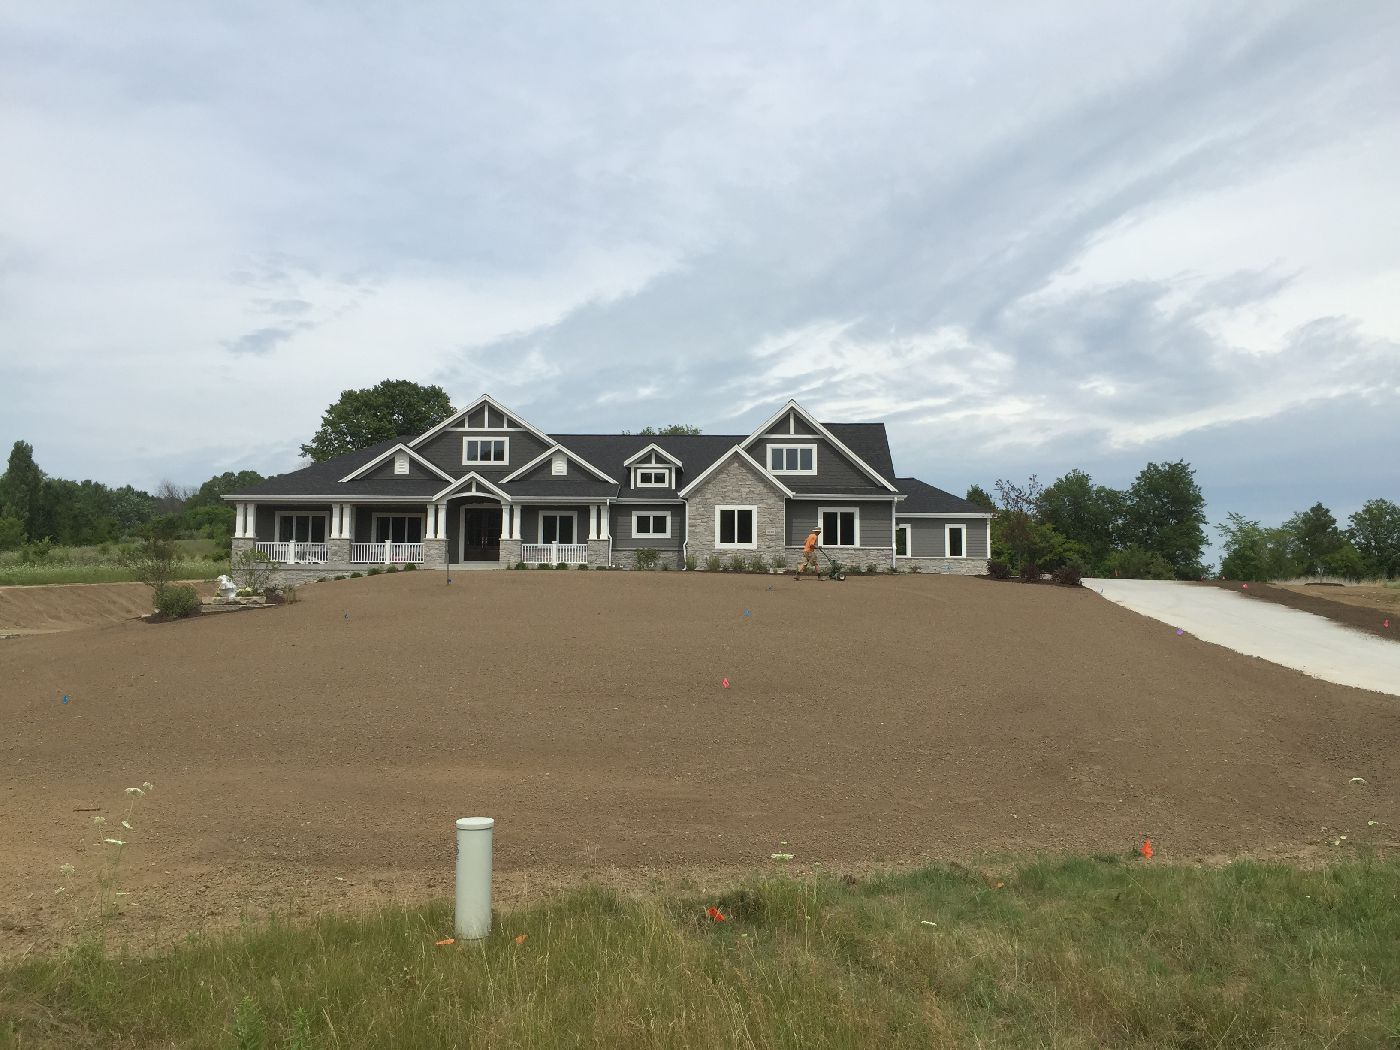 bobs grading and landscaping